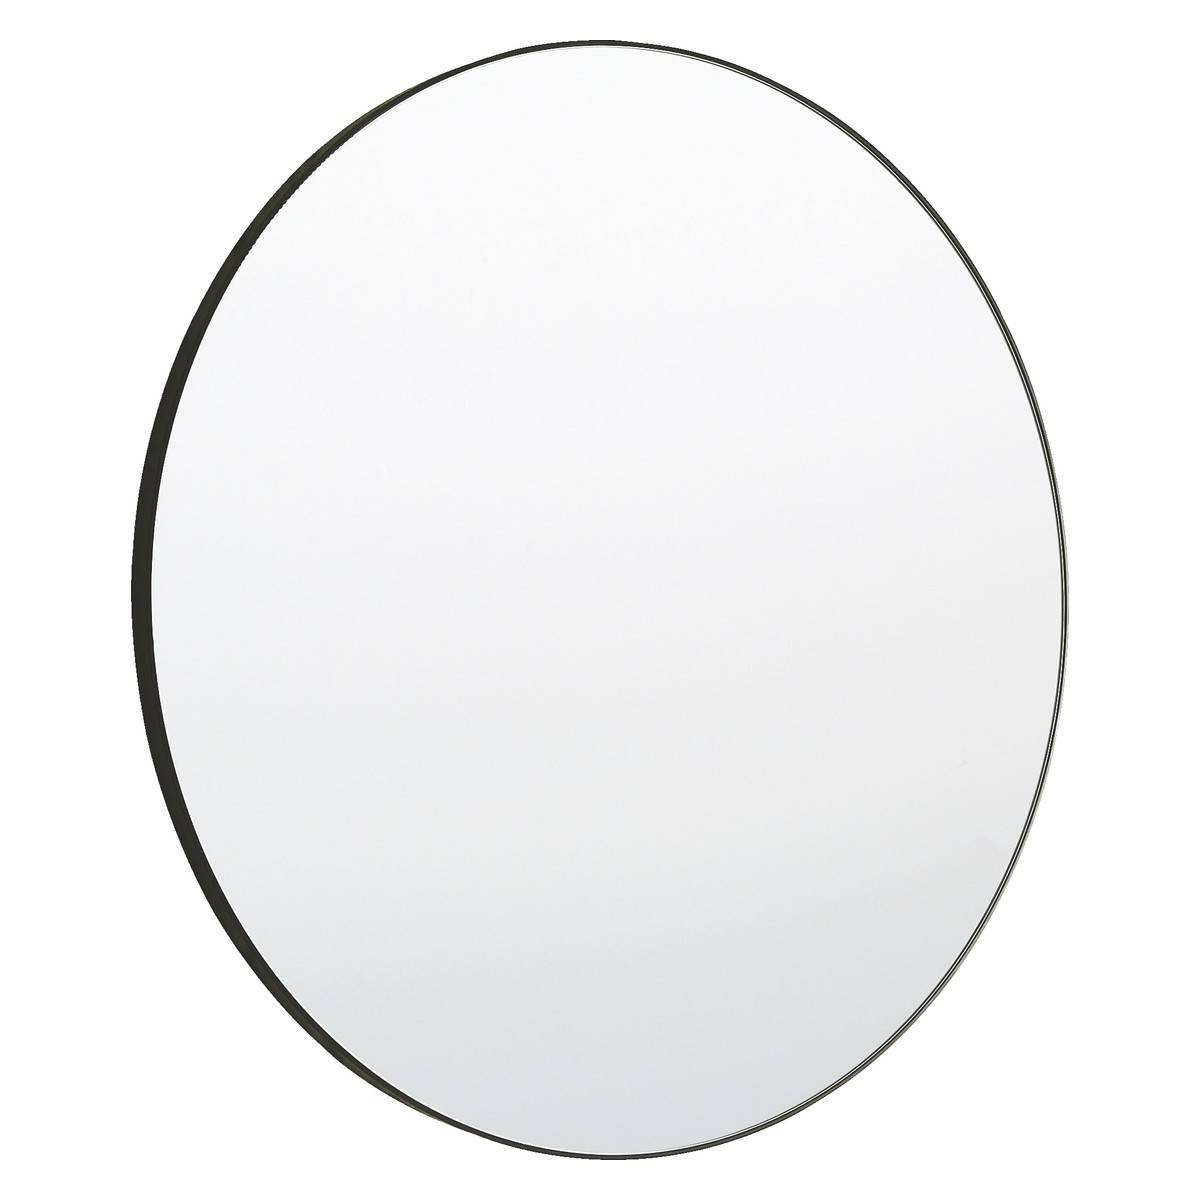 Patsy Large Round Black Wall Mirror D82Cm | Buy Now At Habitat Uk within Large Black Round Mirrors (Image 12 of 15)